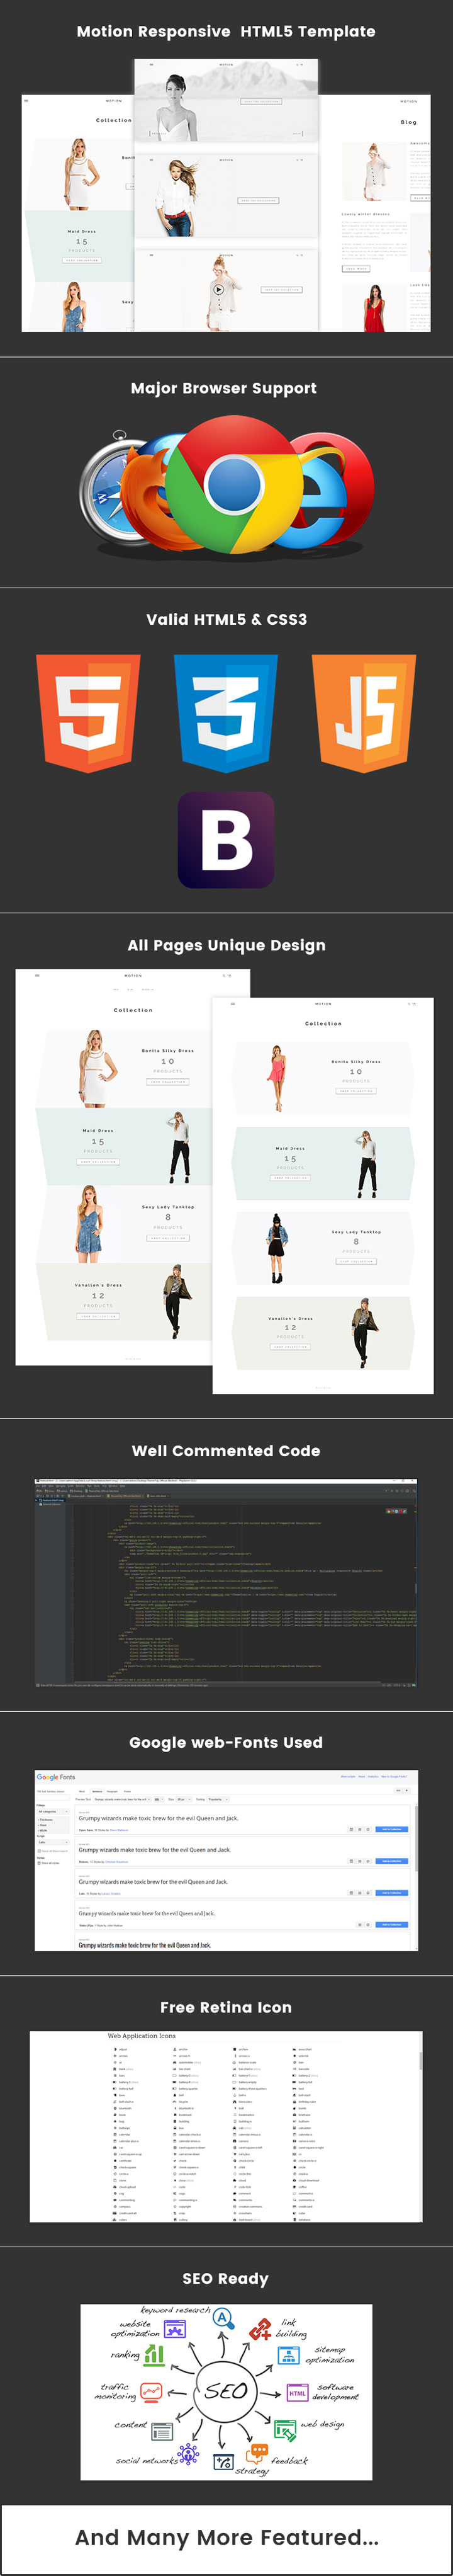 themetidy-Motion-Multipurpose-Responsive-eCommerce-Fashion-Template-feature-list-image